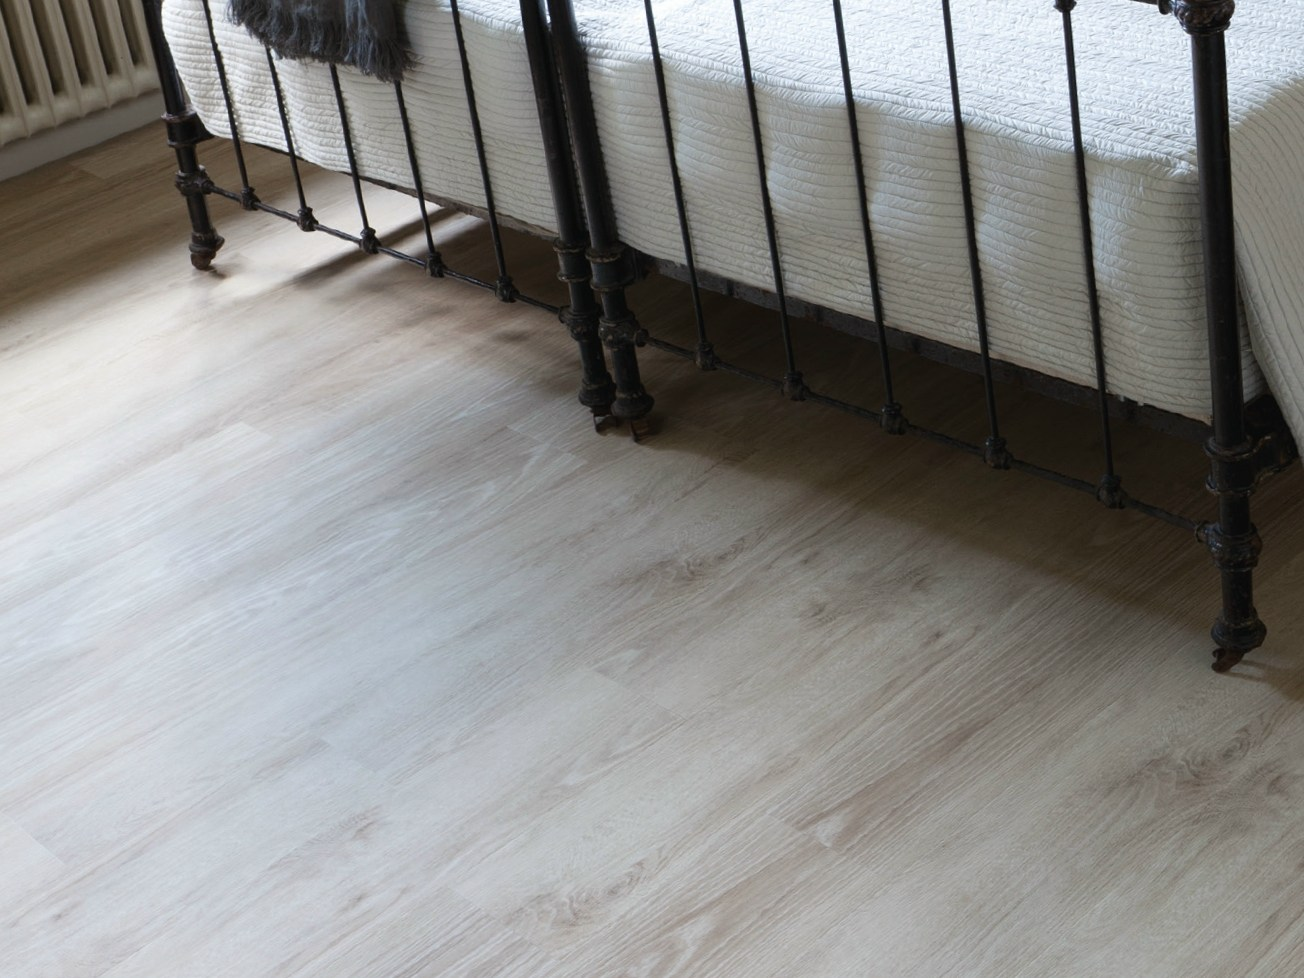 rev tement de sol auto adh sif extra fin en vinyle senso clic ligne lvt flottante by gerflor. Black Bedroom Furniture Sets. Home Design Ideas